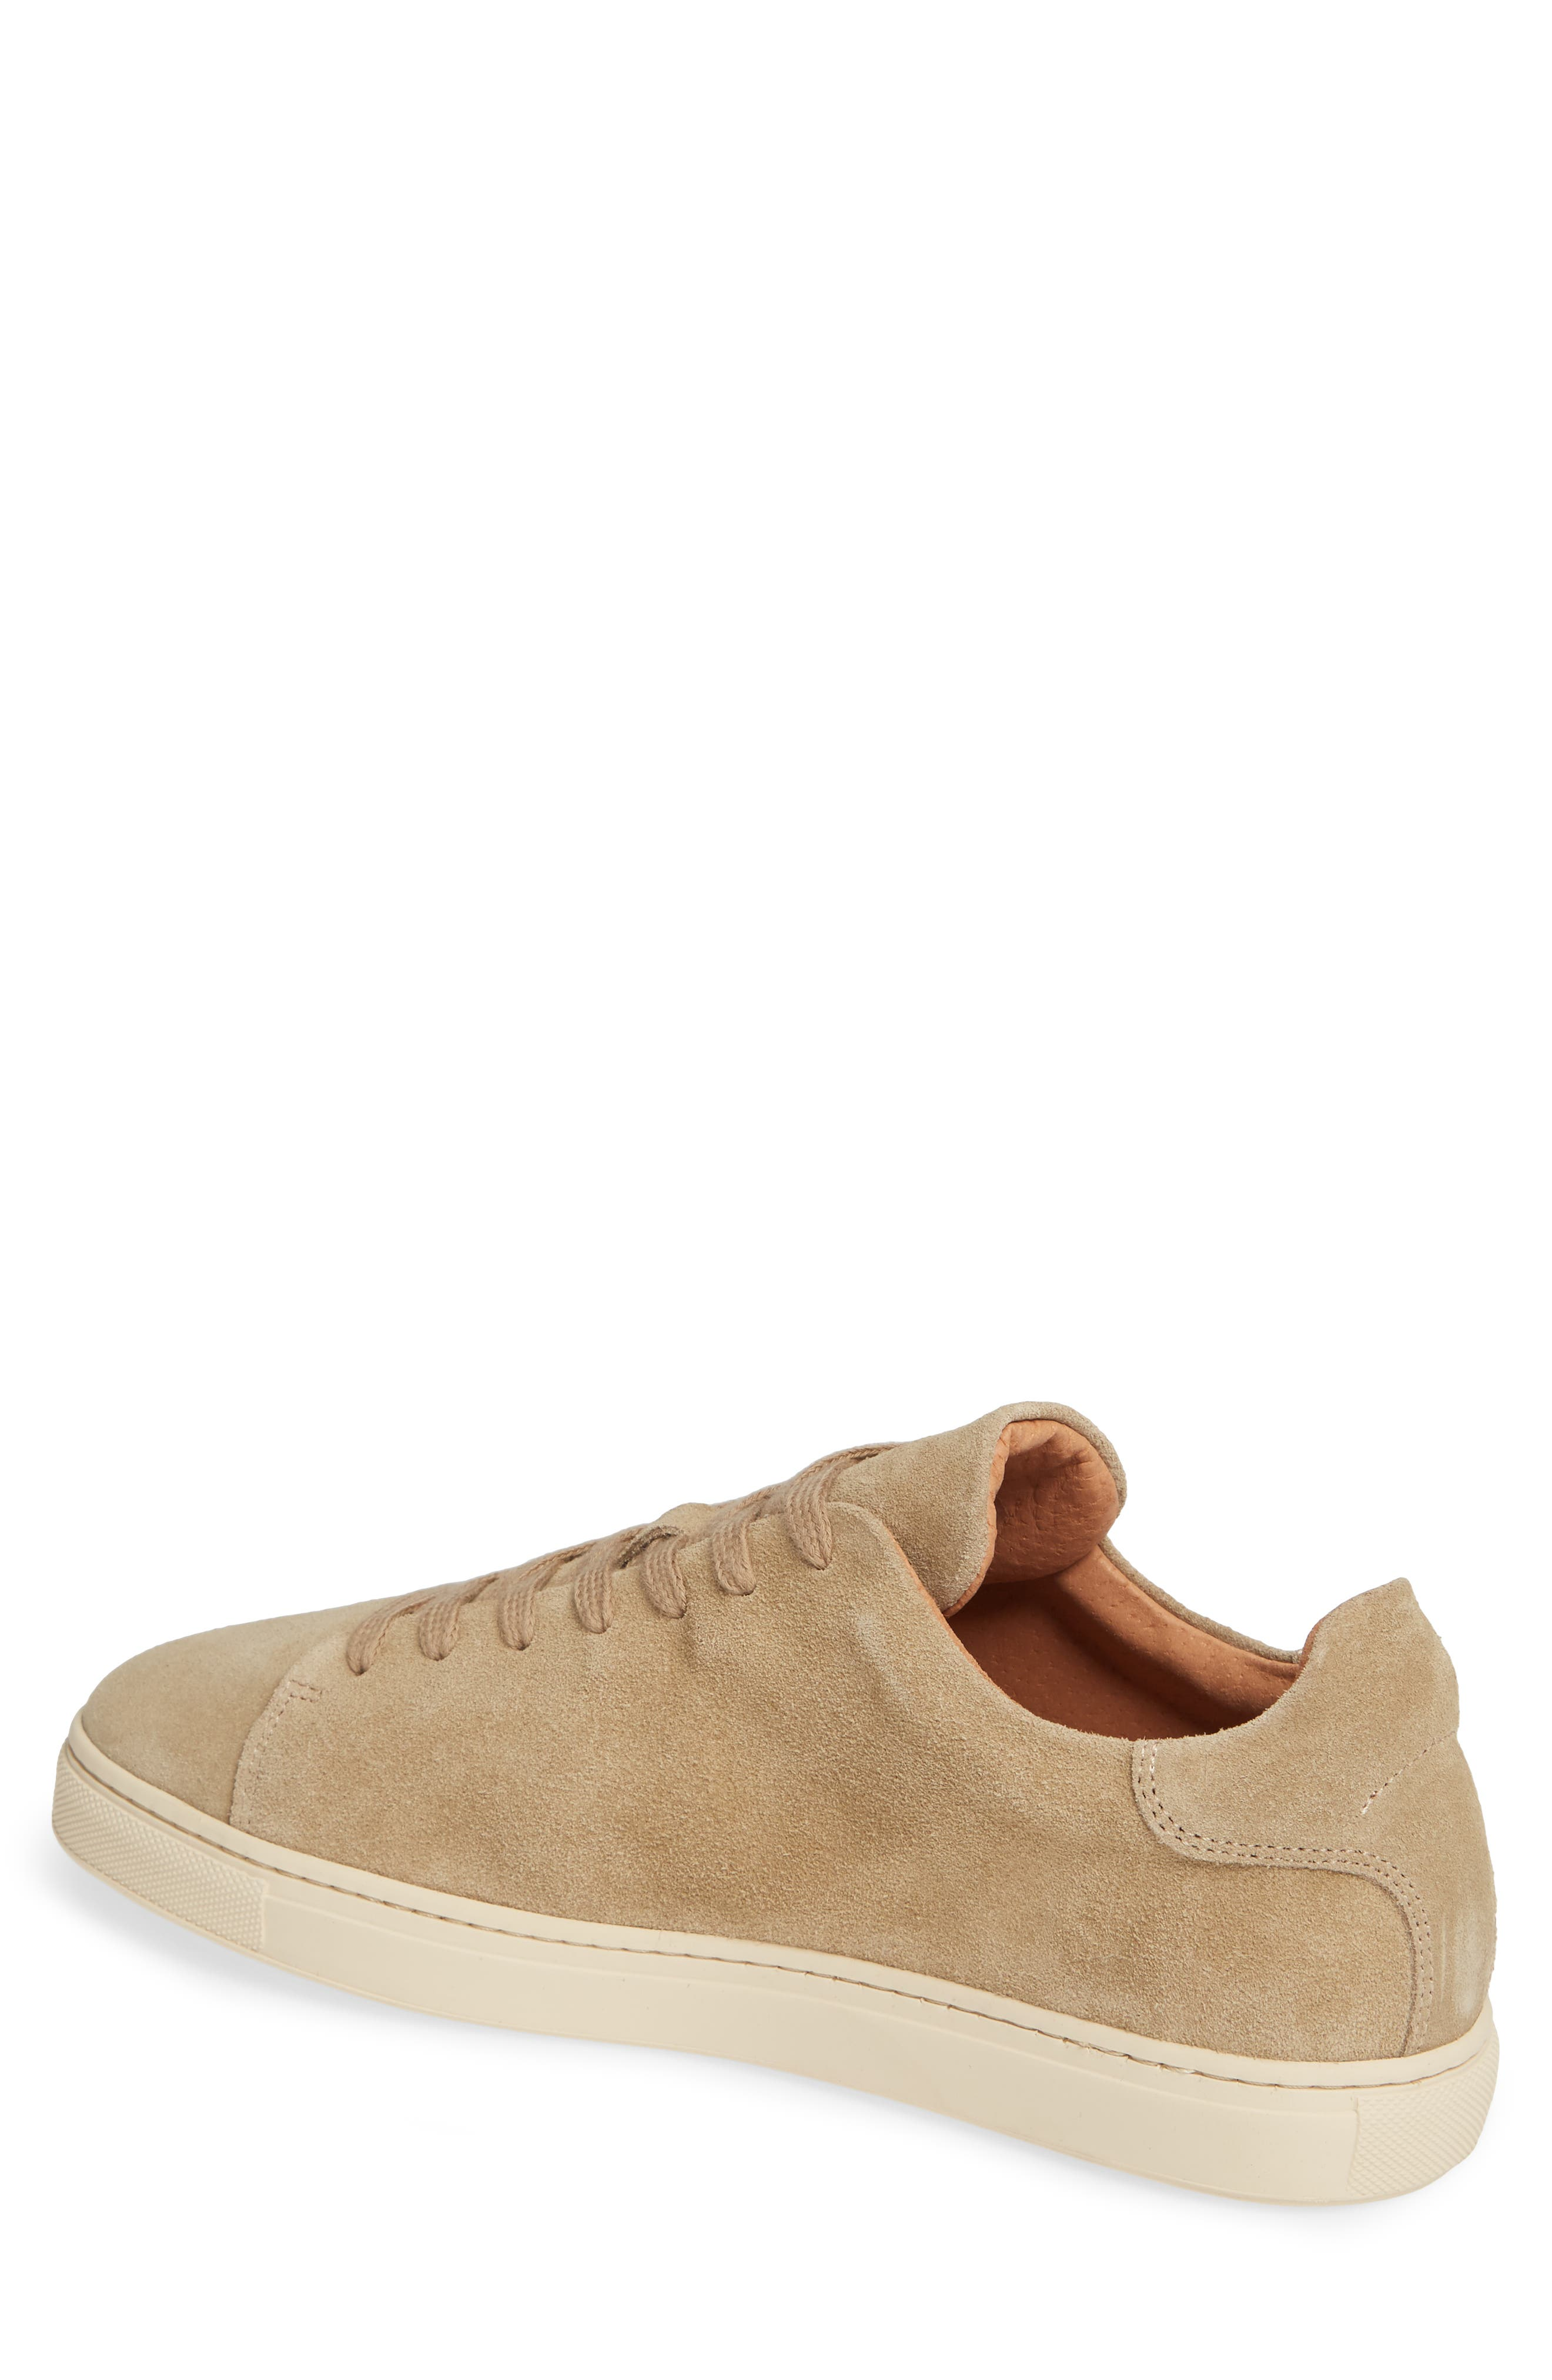 Selected Home David Low Top Sneaker,                             Alternate thumbnail 2, color,                             SAND SUEDE